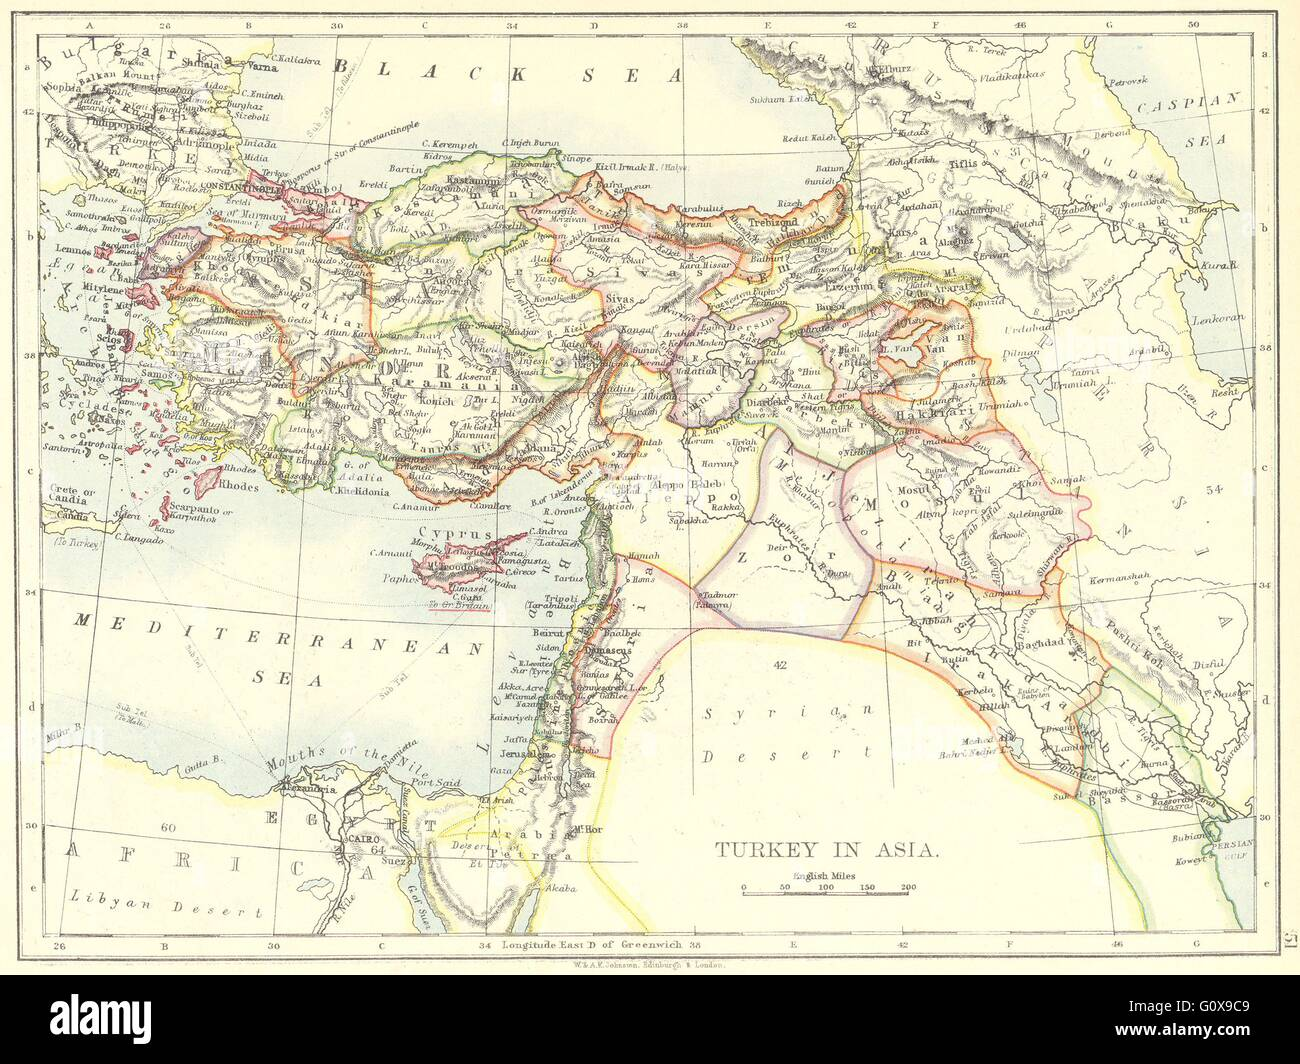 Turkey turkey in asia iraq israel jordan syria iran 1897 stock turkey turkey in asia iraq israel jordan syria iran 1897 antique map gumiabroncs